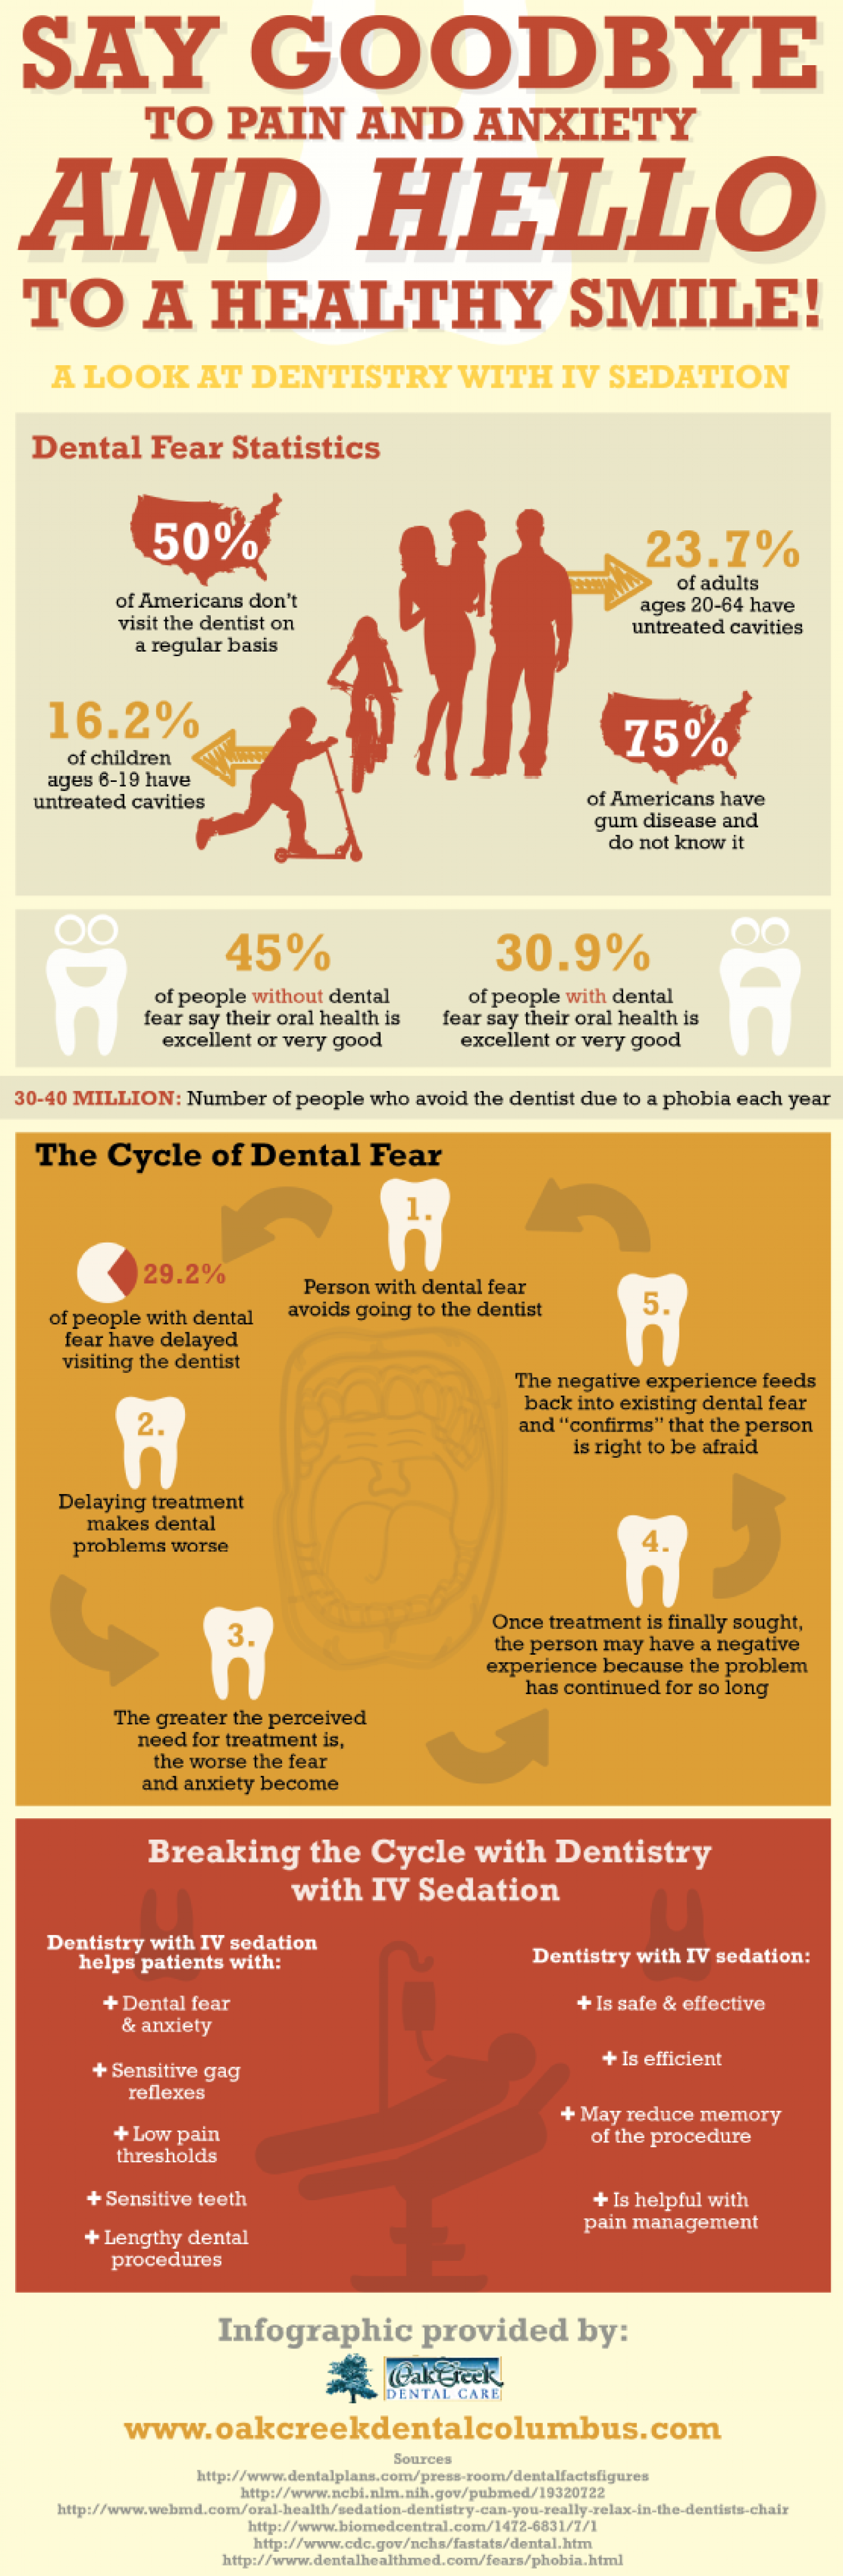 Say Goodbye to Pain and Anxiety and Hello to a Healthy Smile!  Infographic